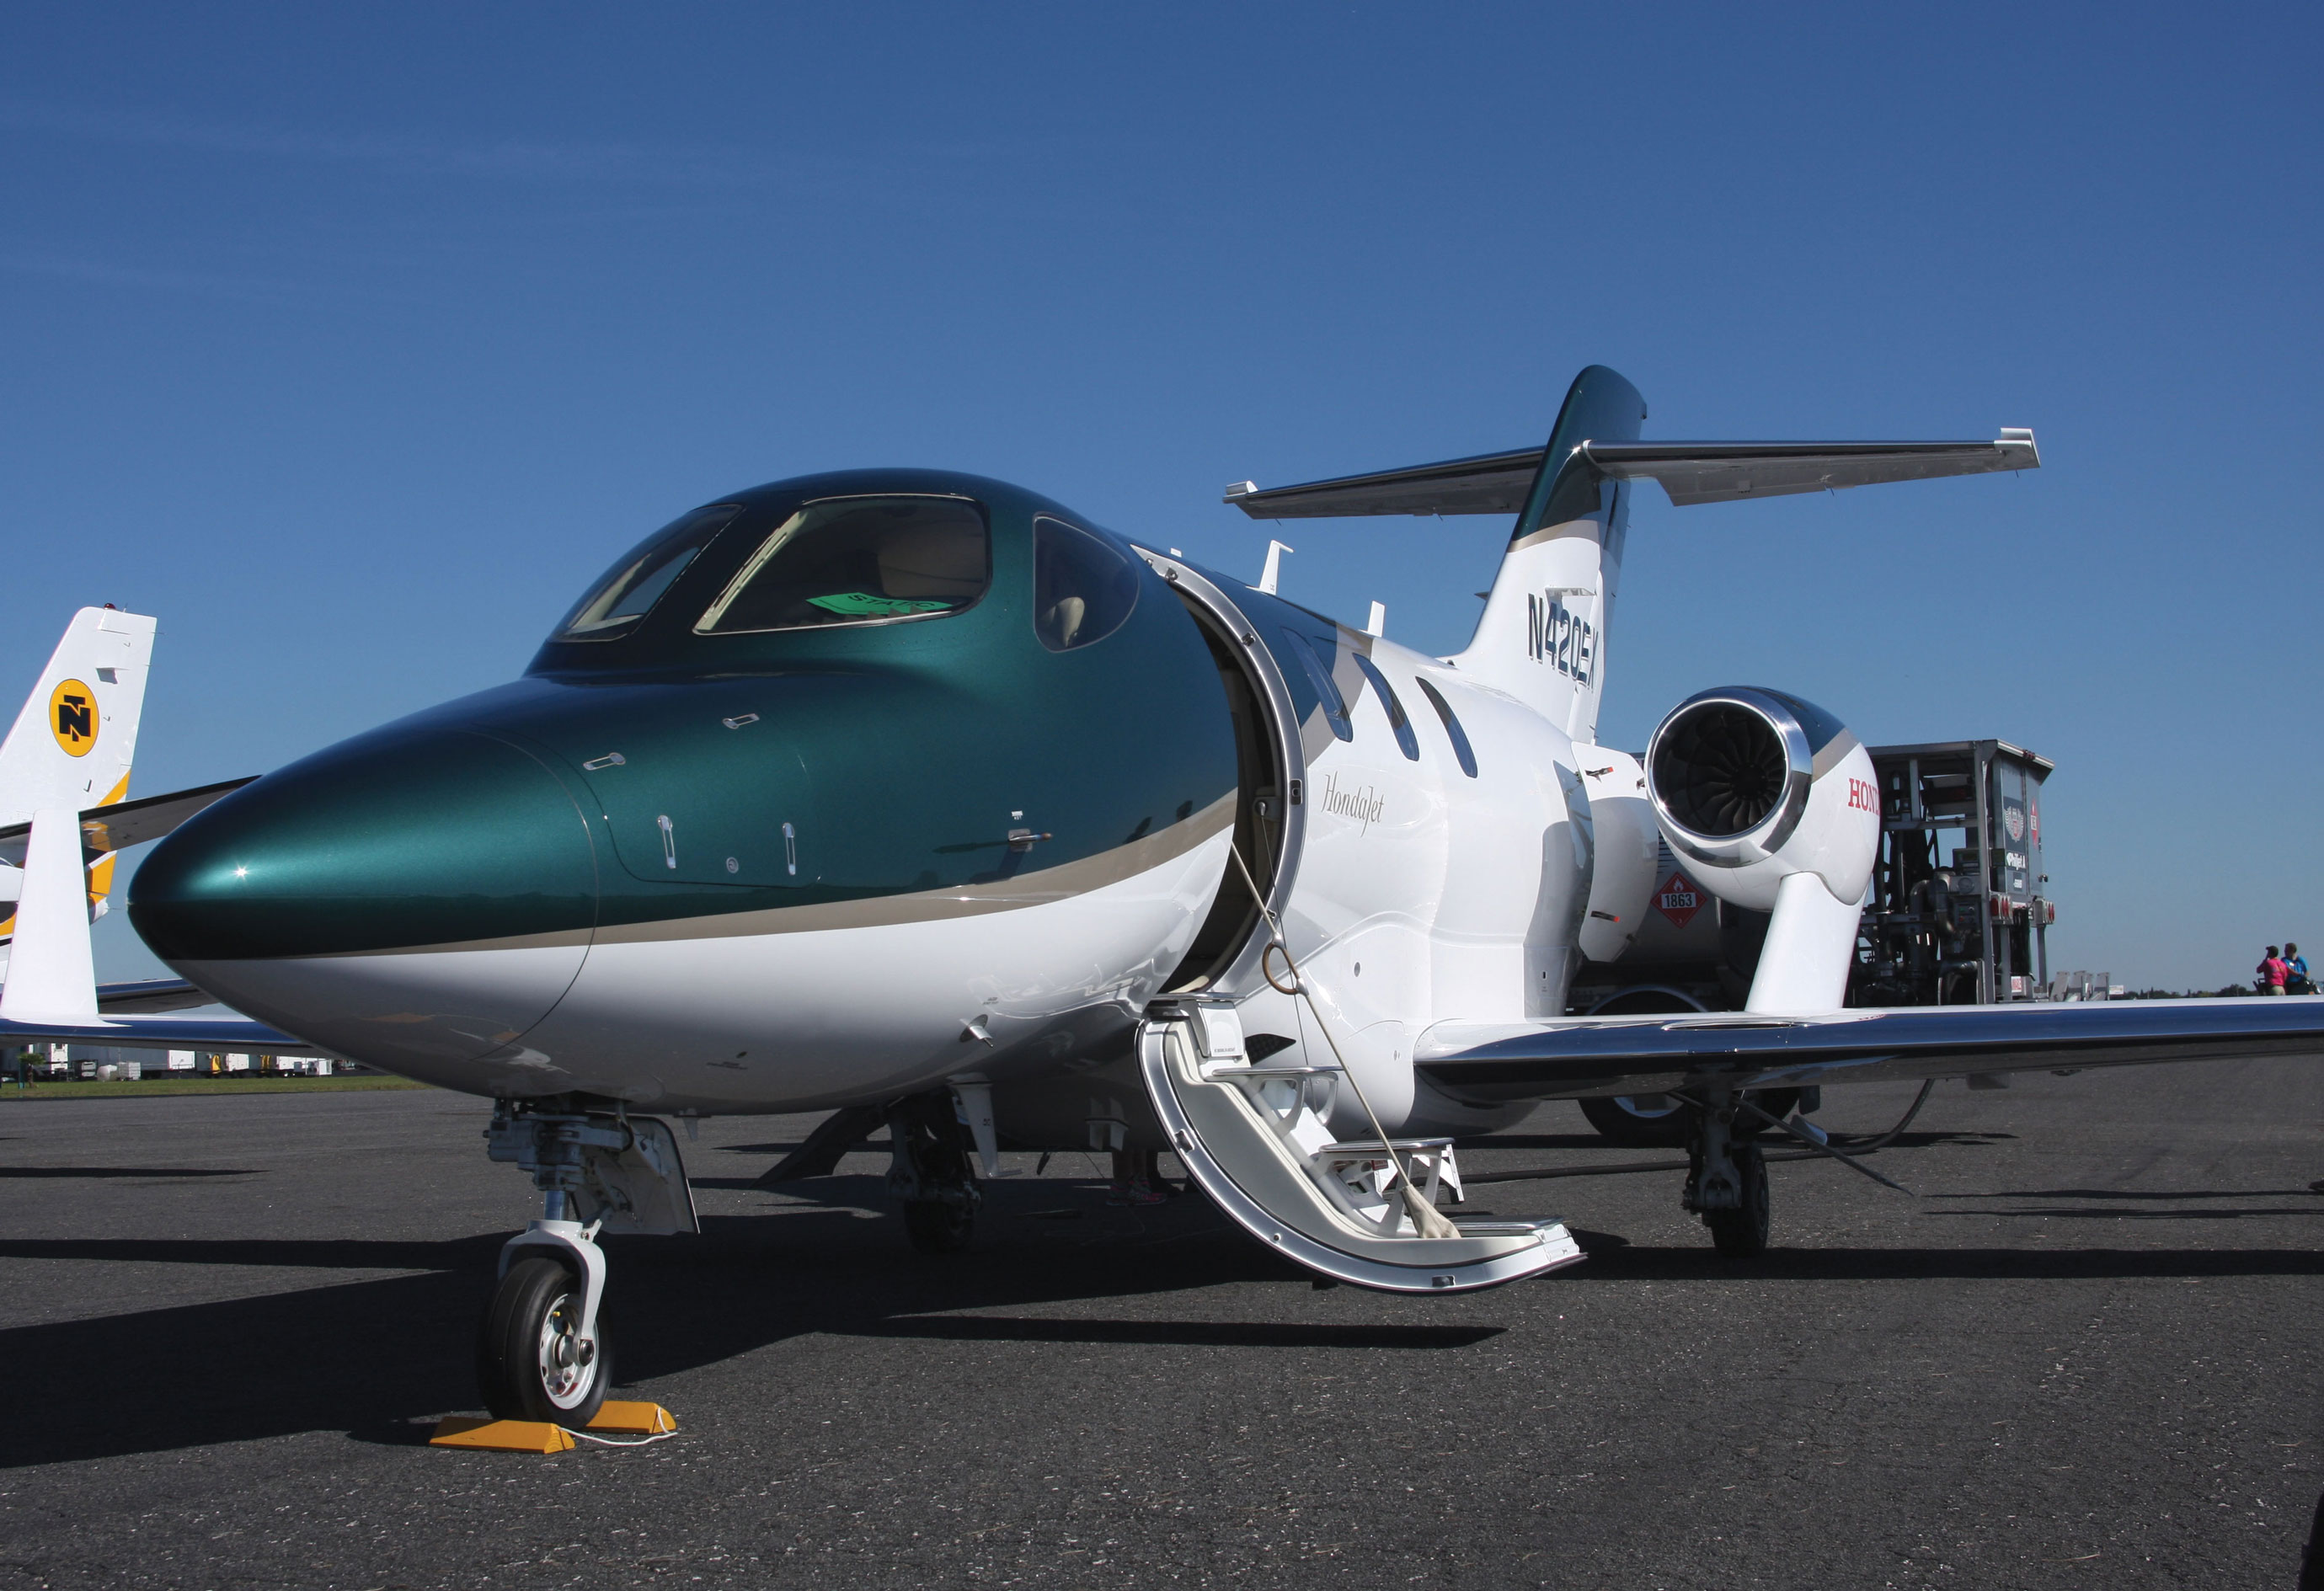 Honda aircraft gears up for hondajet entry into service for How much is a honda jet